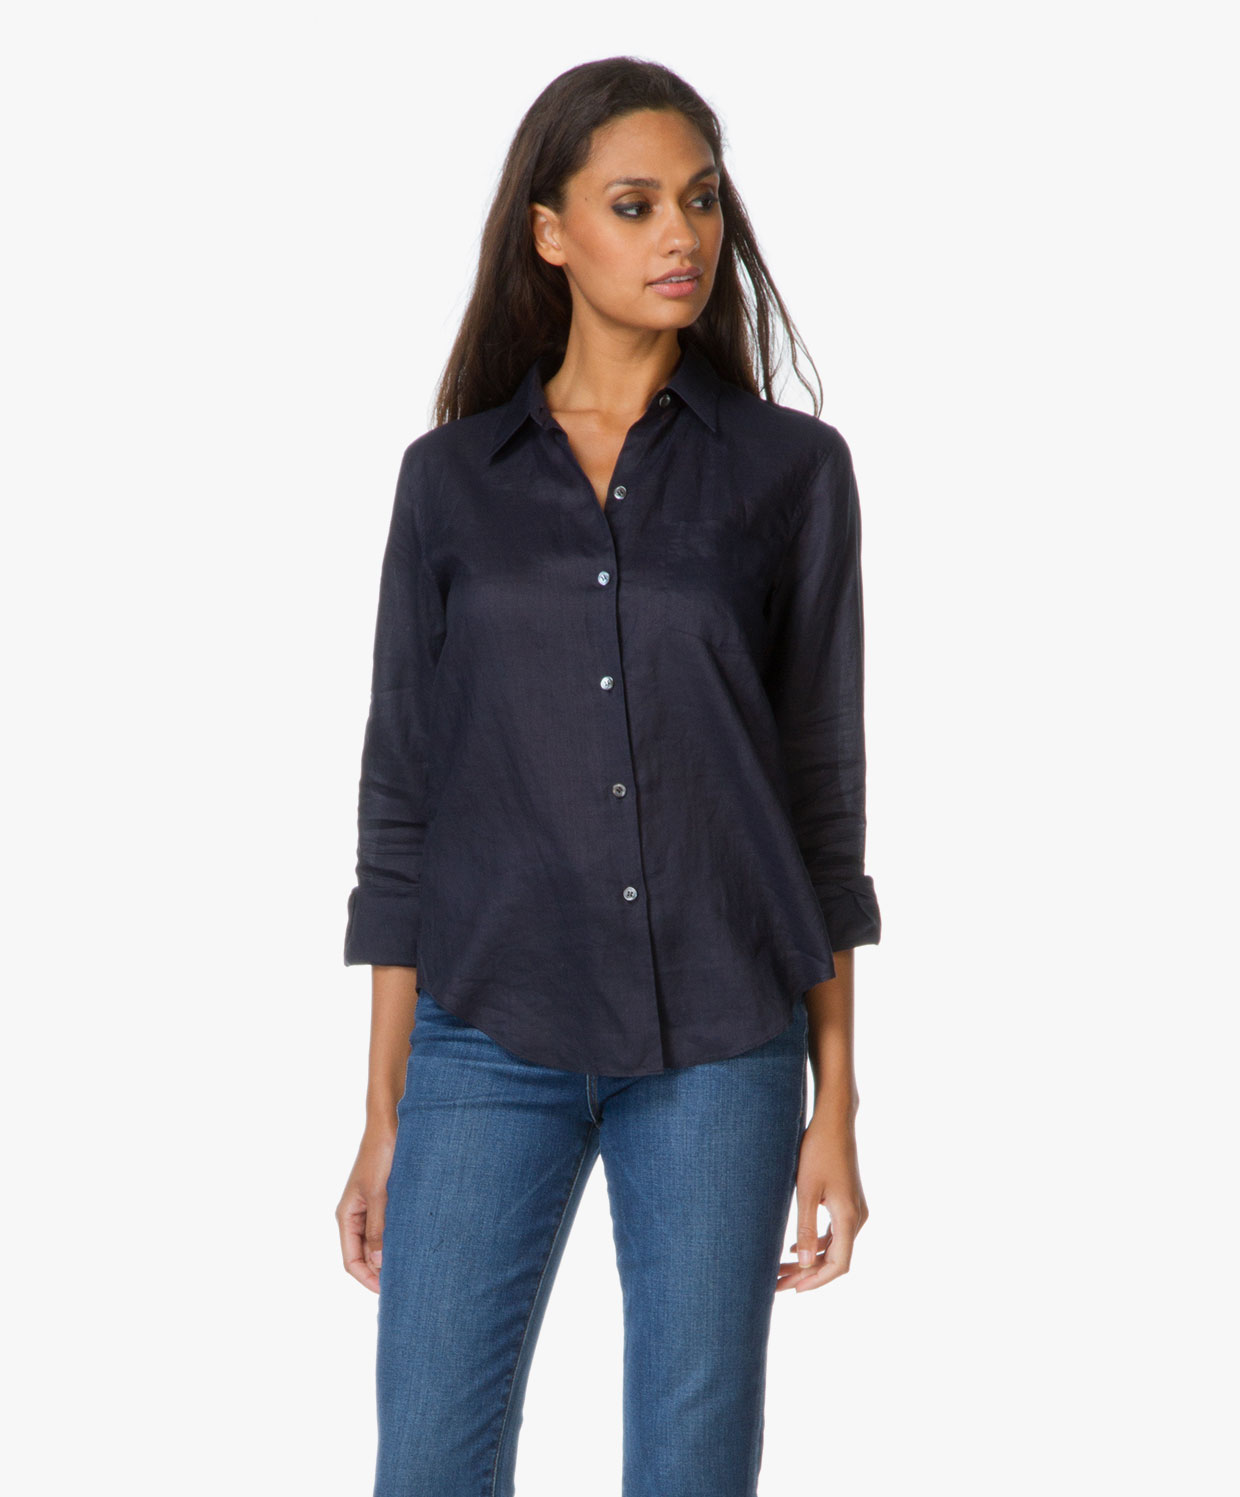 Shop The Look Nonchalant Amp Casual Perfectly Basics